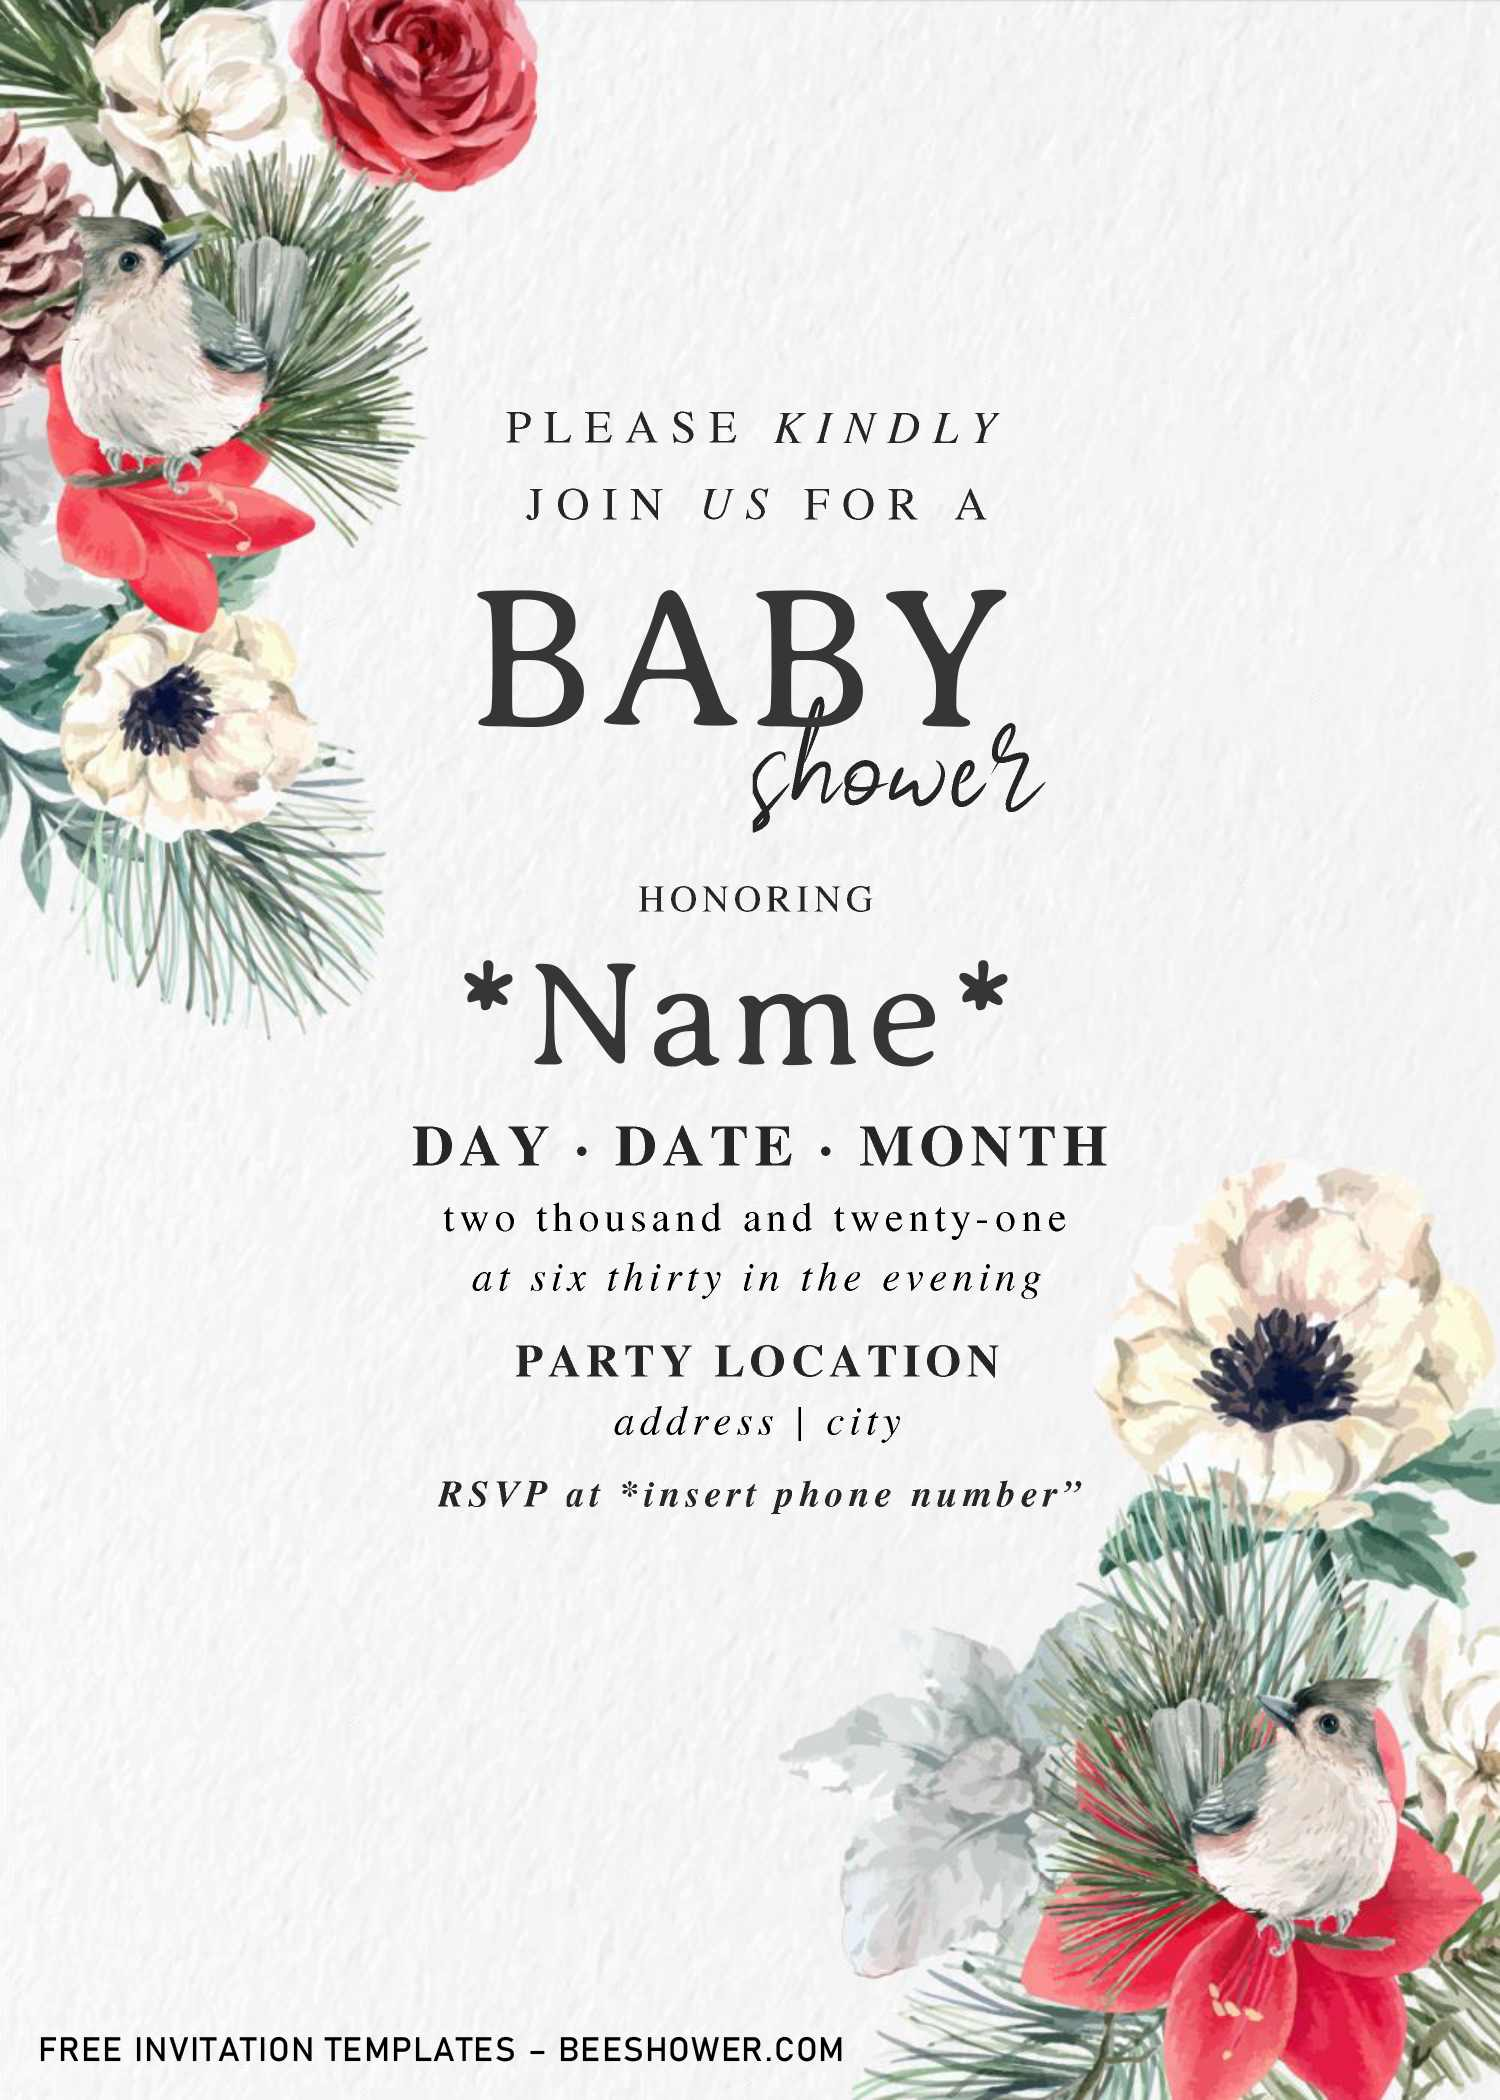 Watercolor Rose Baby Shower Invitation Templates For Word